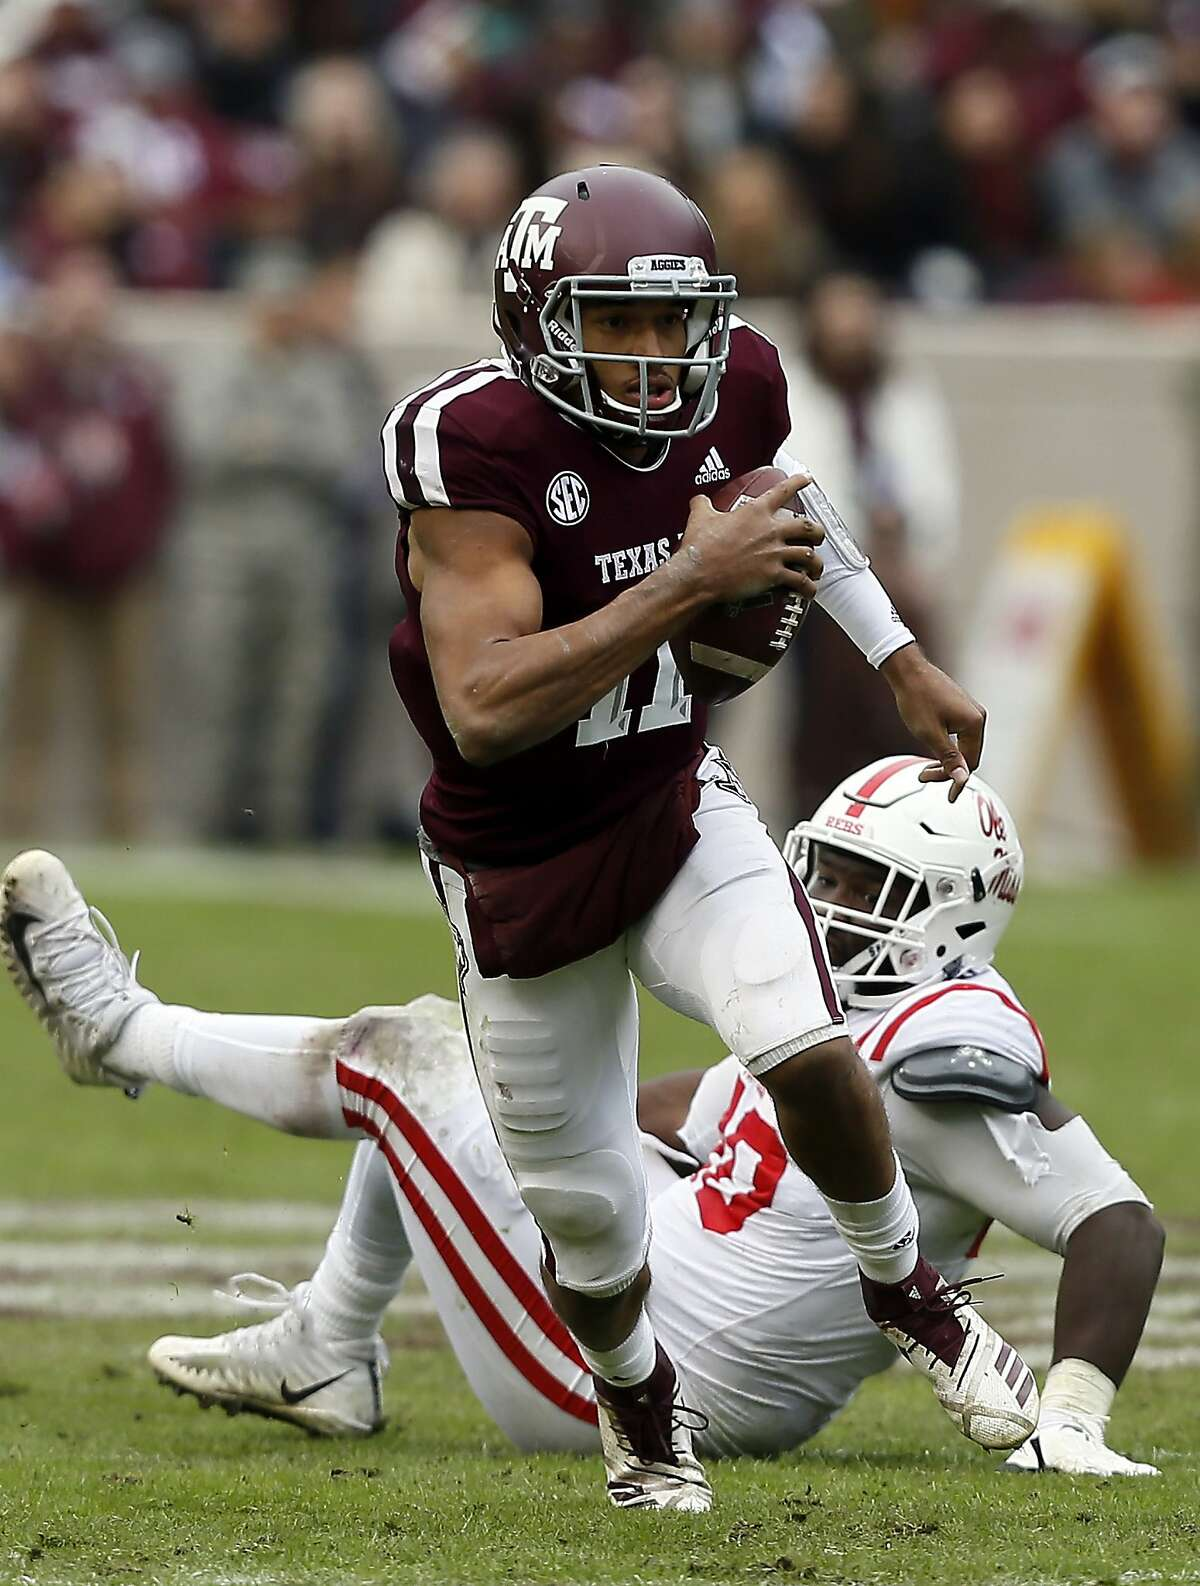 >>> Check out the over/under win totals for all of the FBS college football teams in Texas, according to several betting outlets.